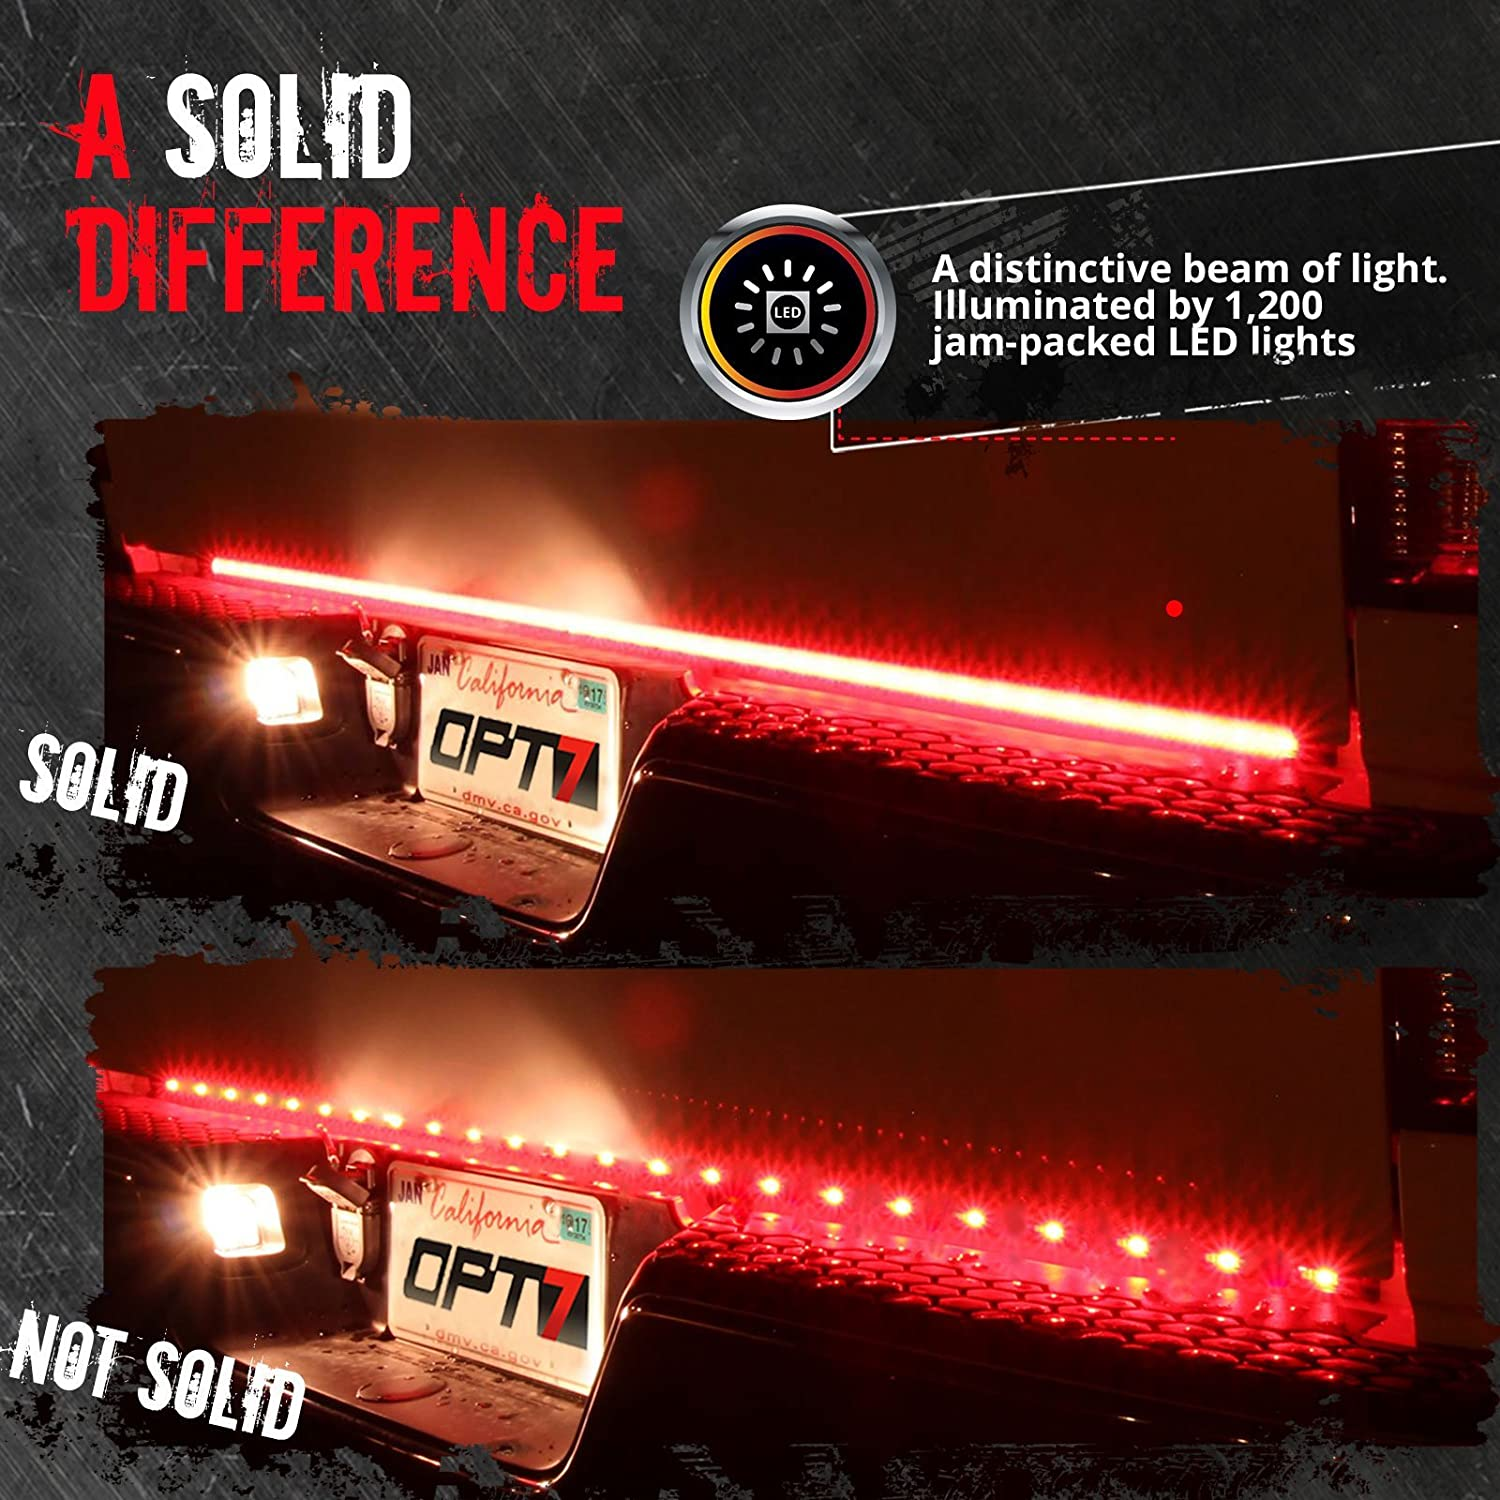 Opt7 led switch wiring diagram diagram schematic amazon com opt7 60 redline triple led tailgate light bar w opt7 led switch wiring diagram swarovskicordoba Image collections